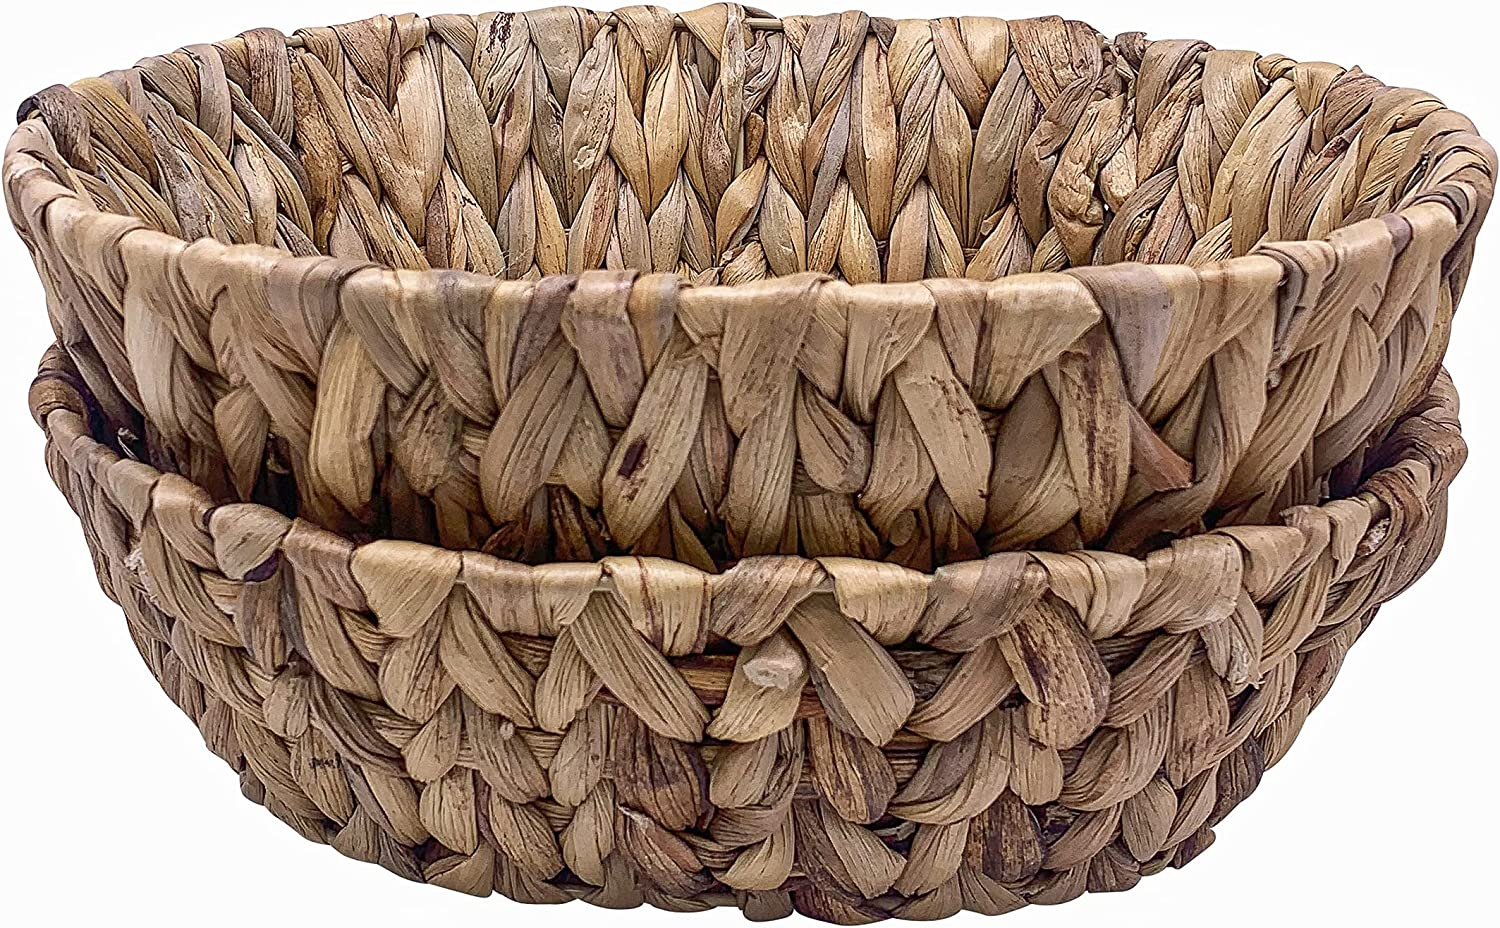 Natural Water-Hyacinth Baskets for Serving - 2-Piece Oval Woven Baskets for Bread, Chips, Fruit - Wicker Bowls for Organizing - Gifts Holder Empty - Eco-Friendly Rustic Home Decor - 11.4 x 3.5 Inches